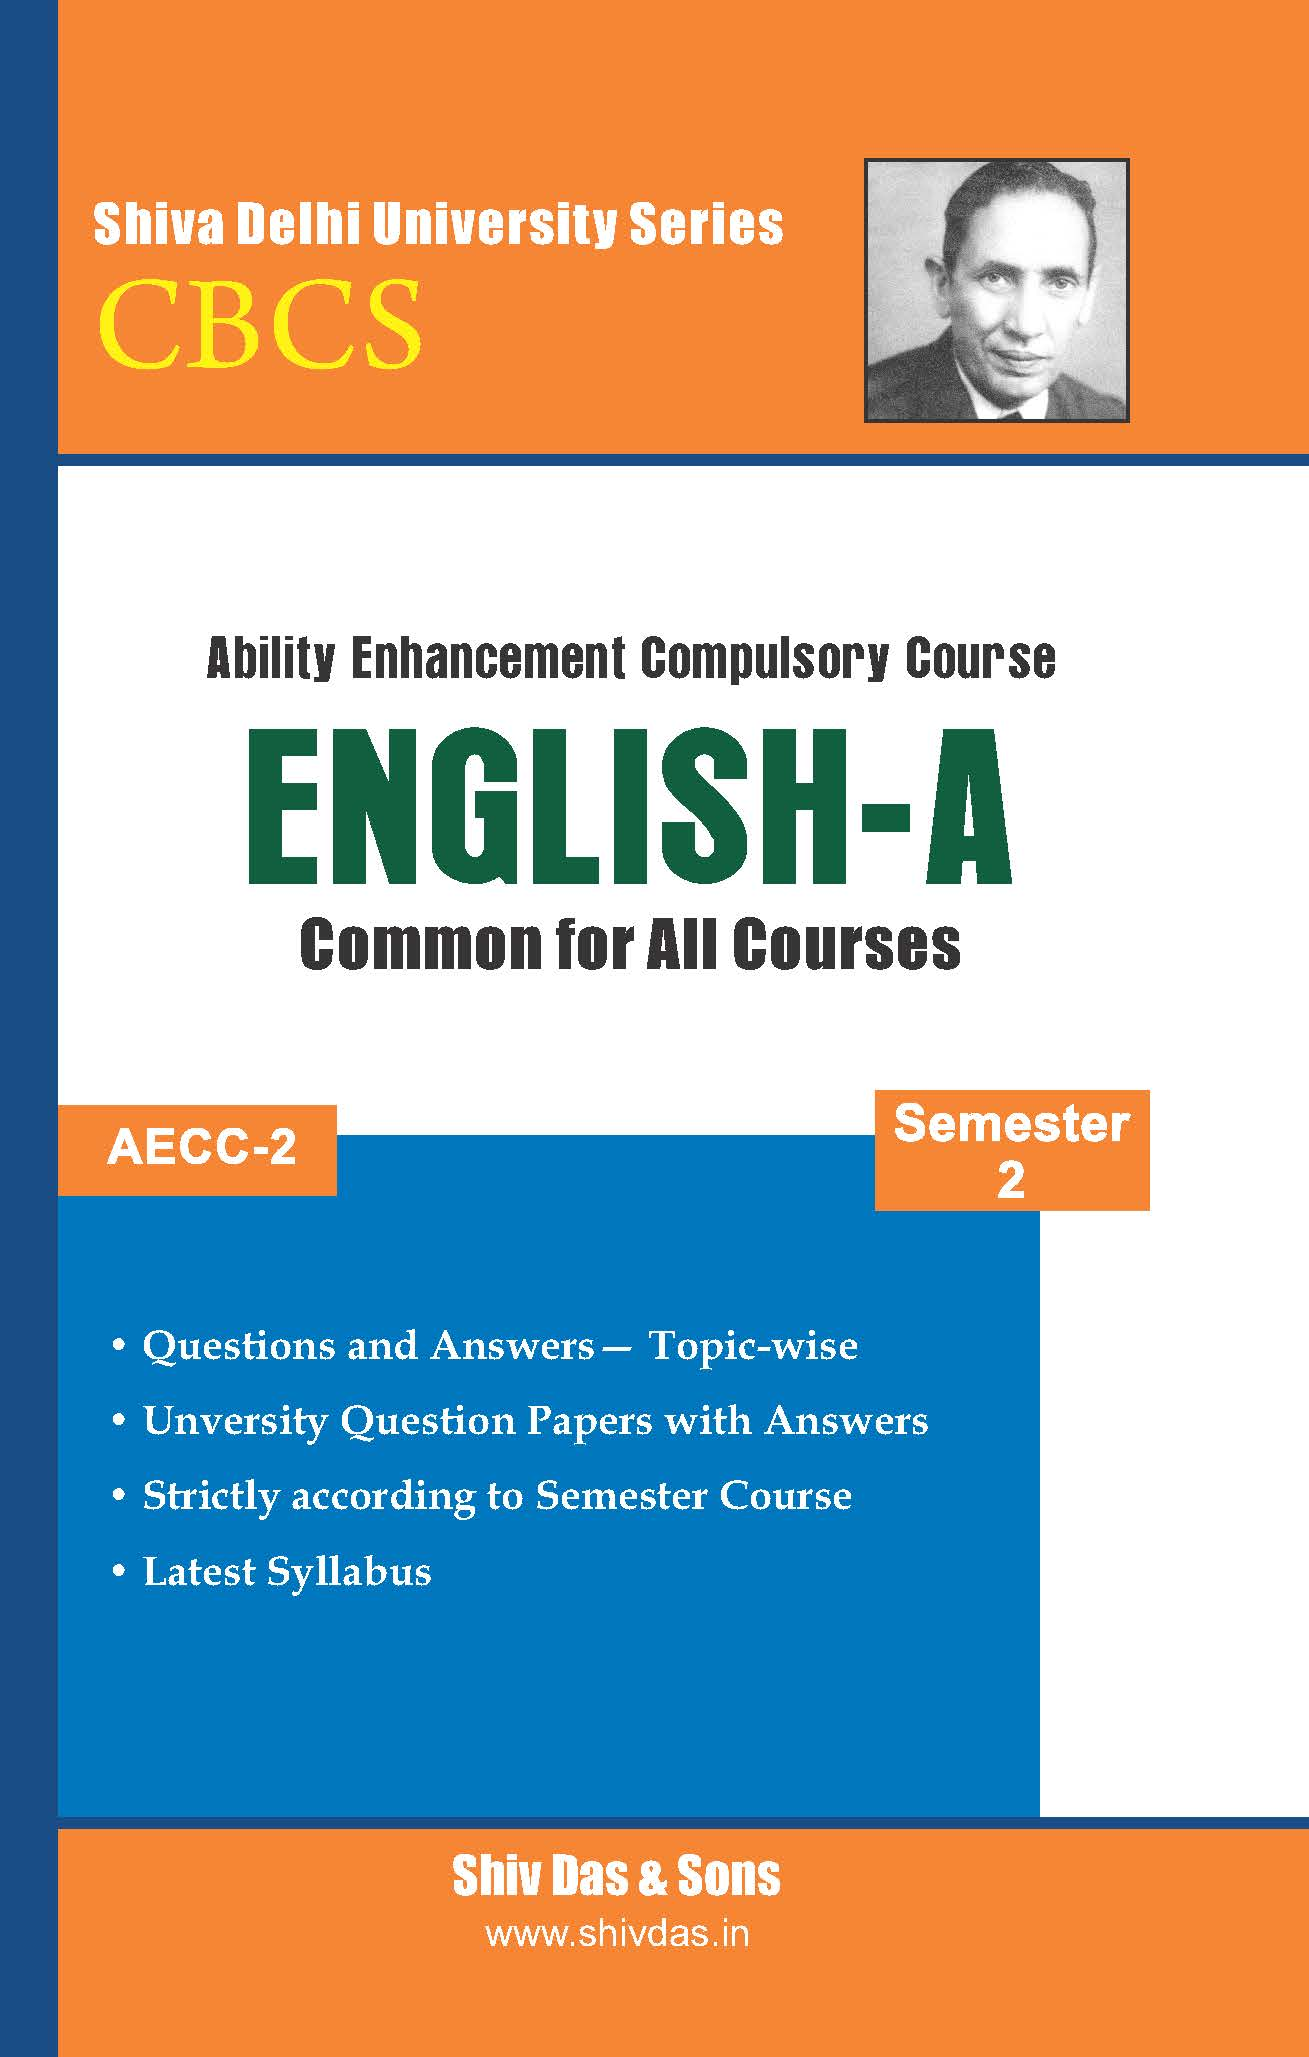 B.Com Hons. Semester-2 English-A